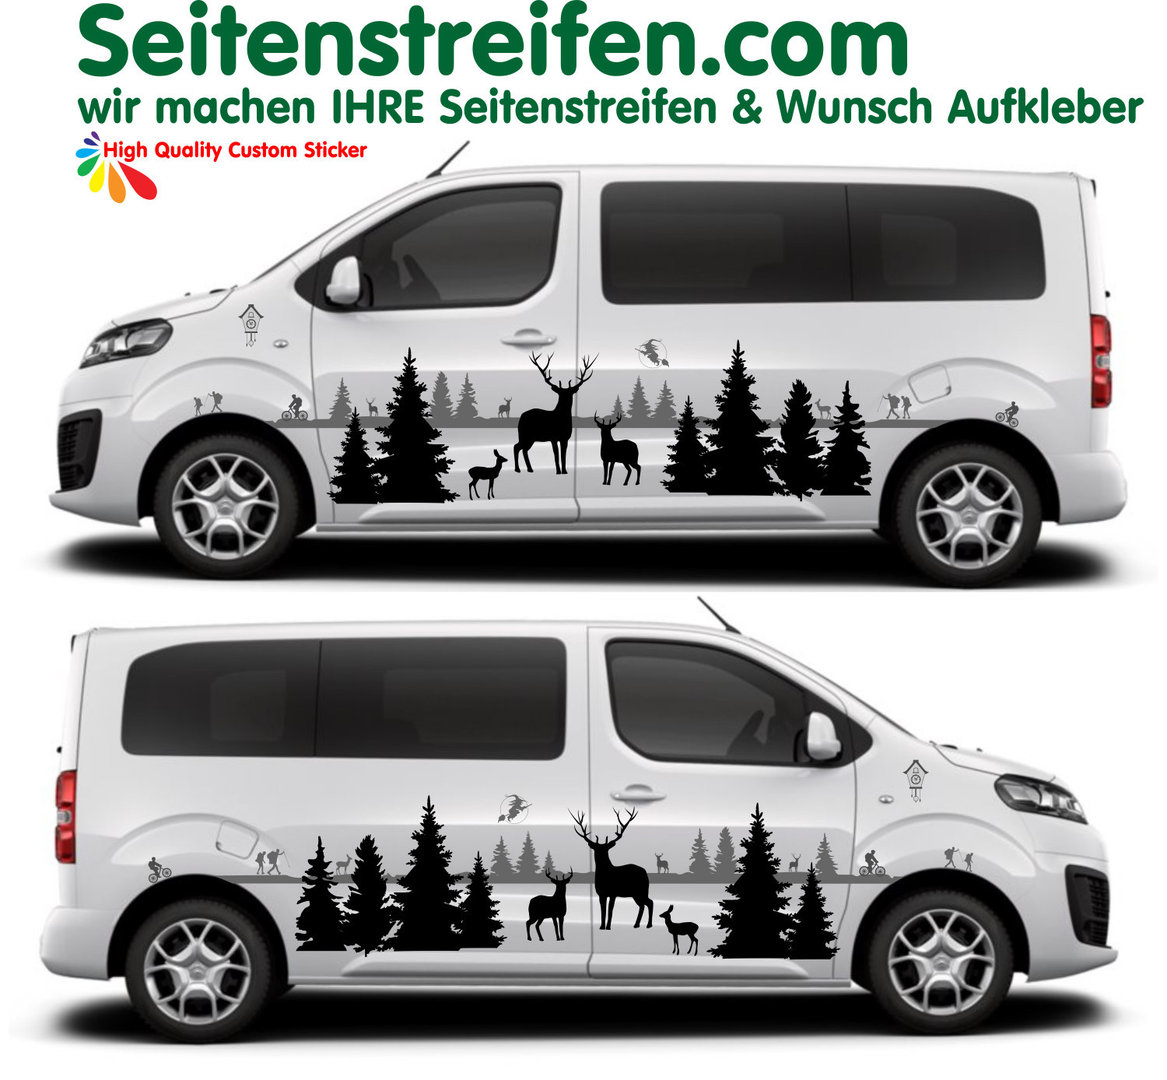 Citroën Spacetourer / Jumpy Black Forest Wald Outdoor 2D Aufkleber Dekor Set - D3339